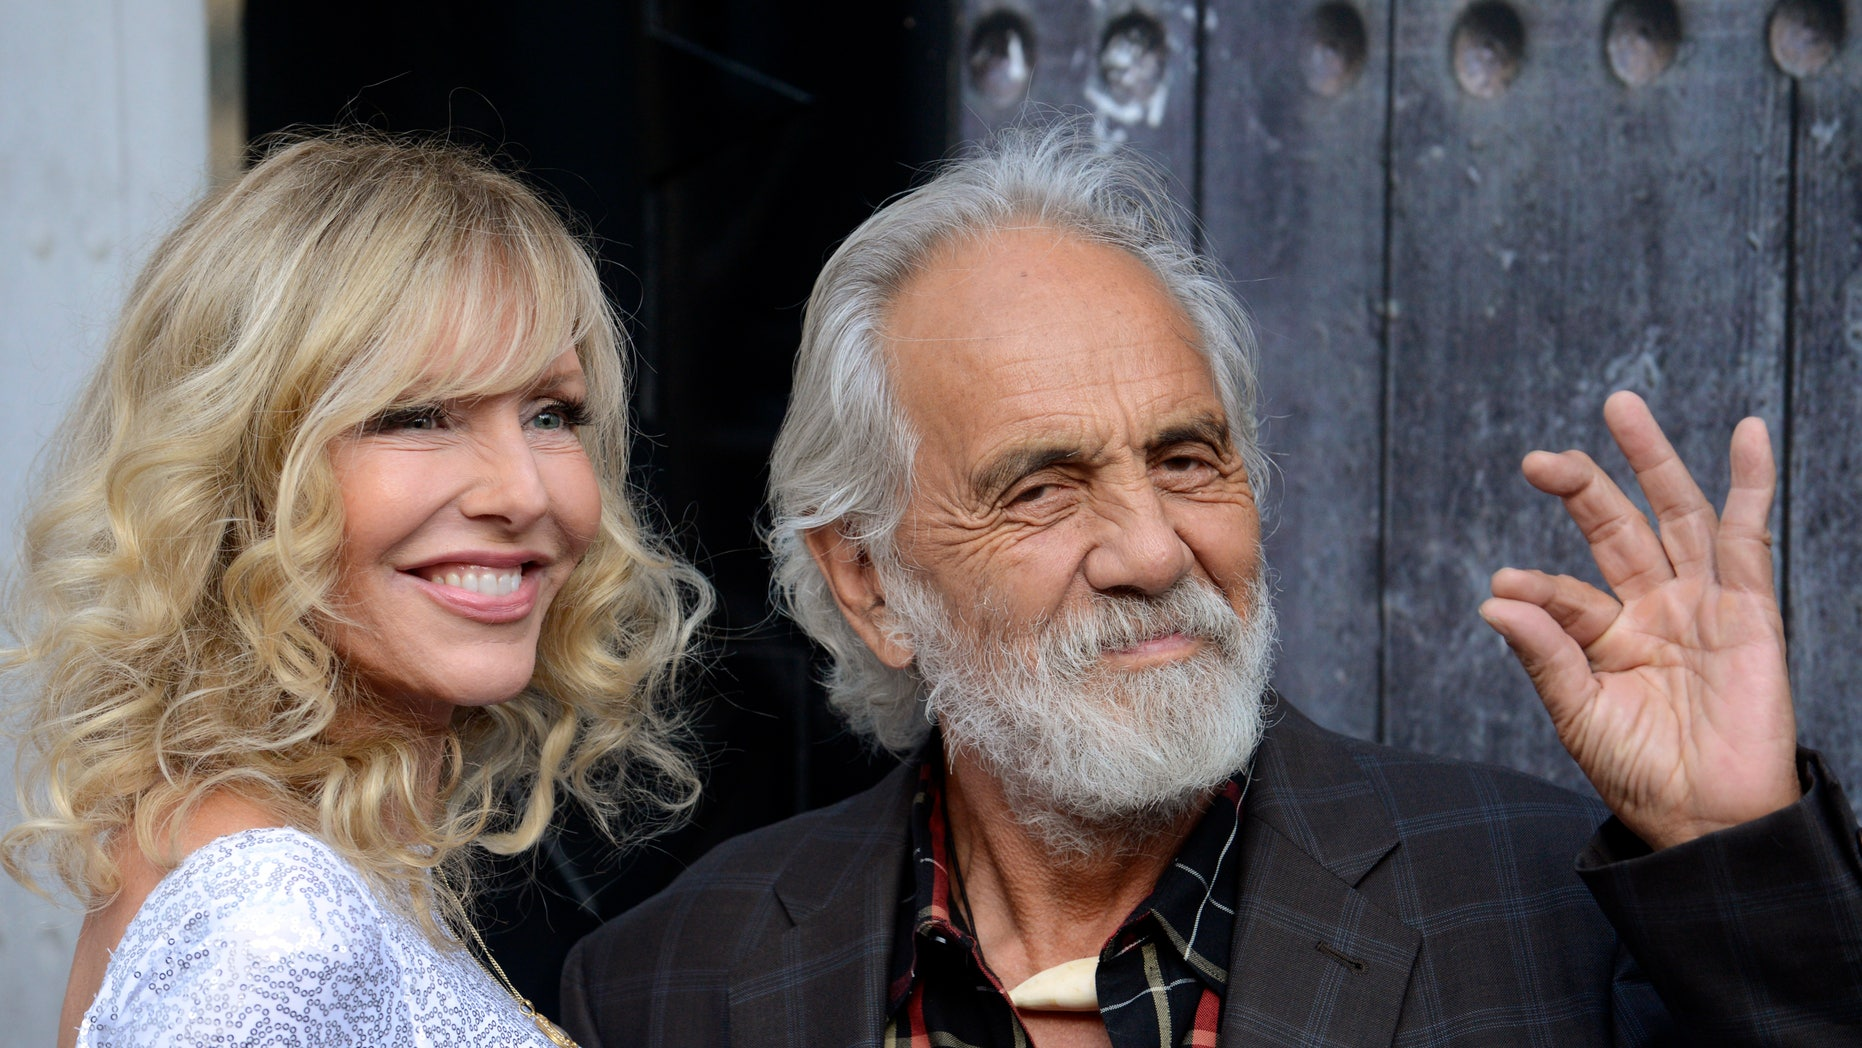 Comedian Tommy Chong, right, and his wife Shelby Chong attend Spike TV's Guys Choice awards in Los Angeles June 7, 2014.